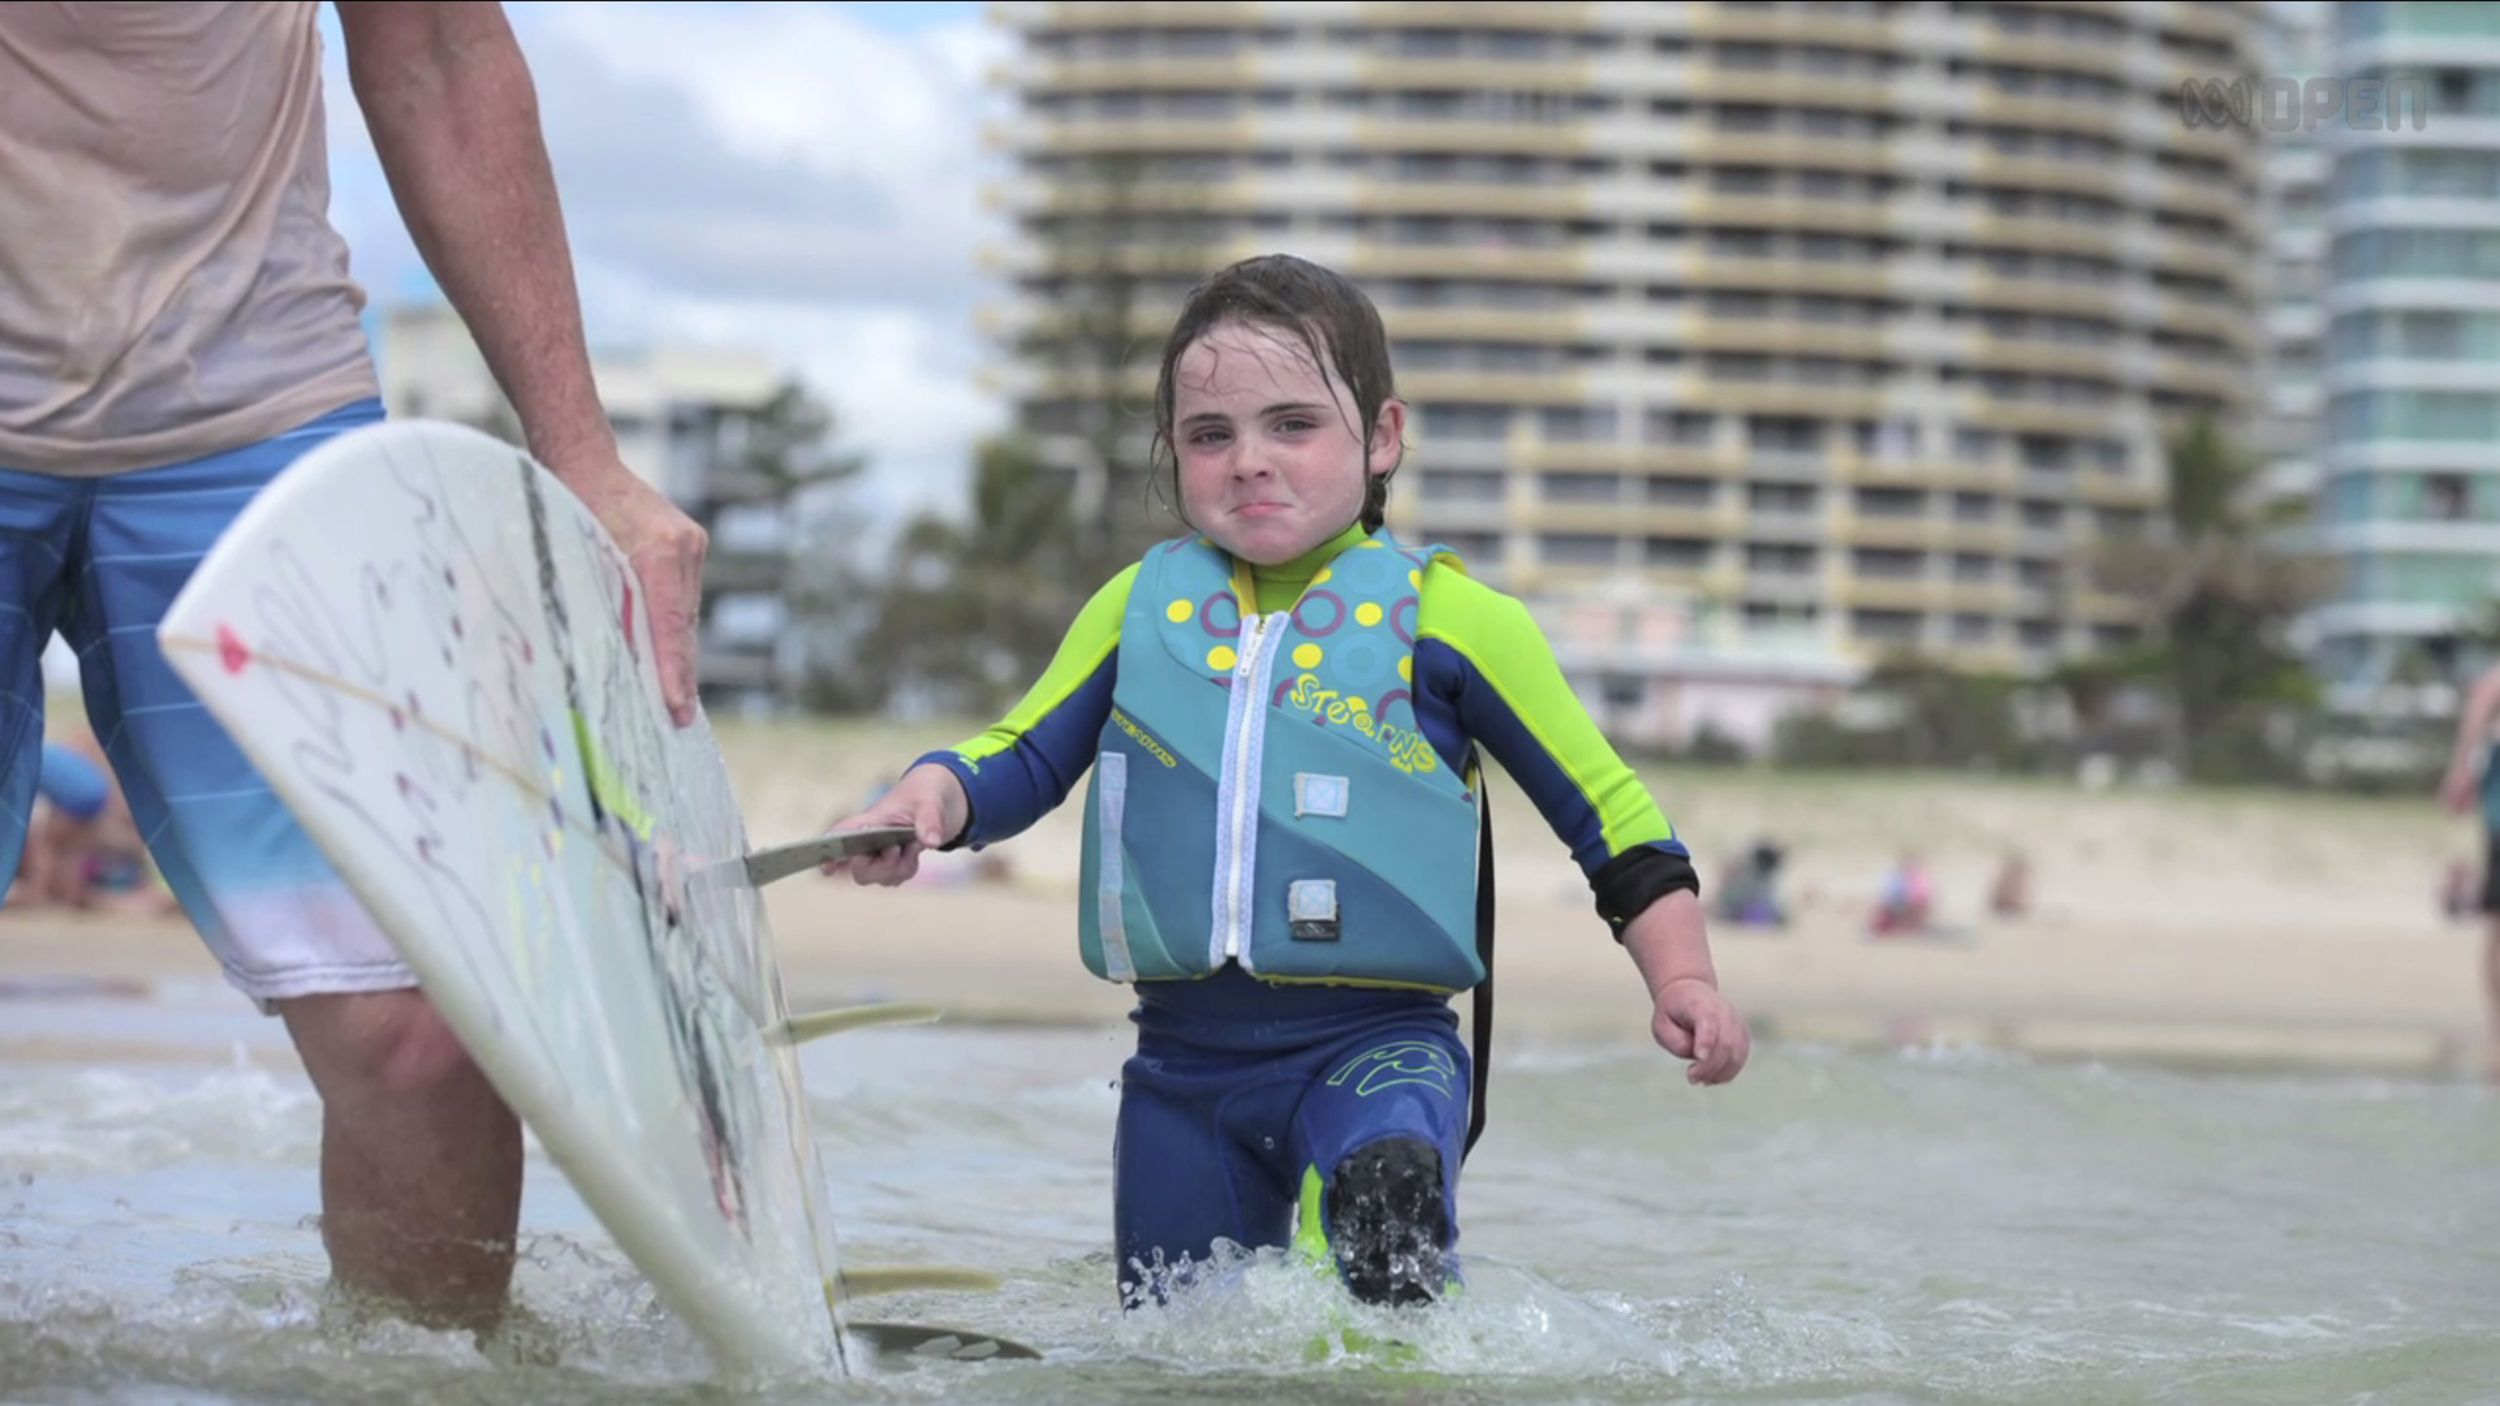 6-year-old surfer girl won't let disease wipe out her serious skills